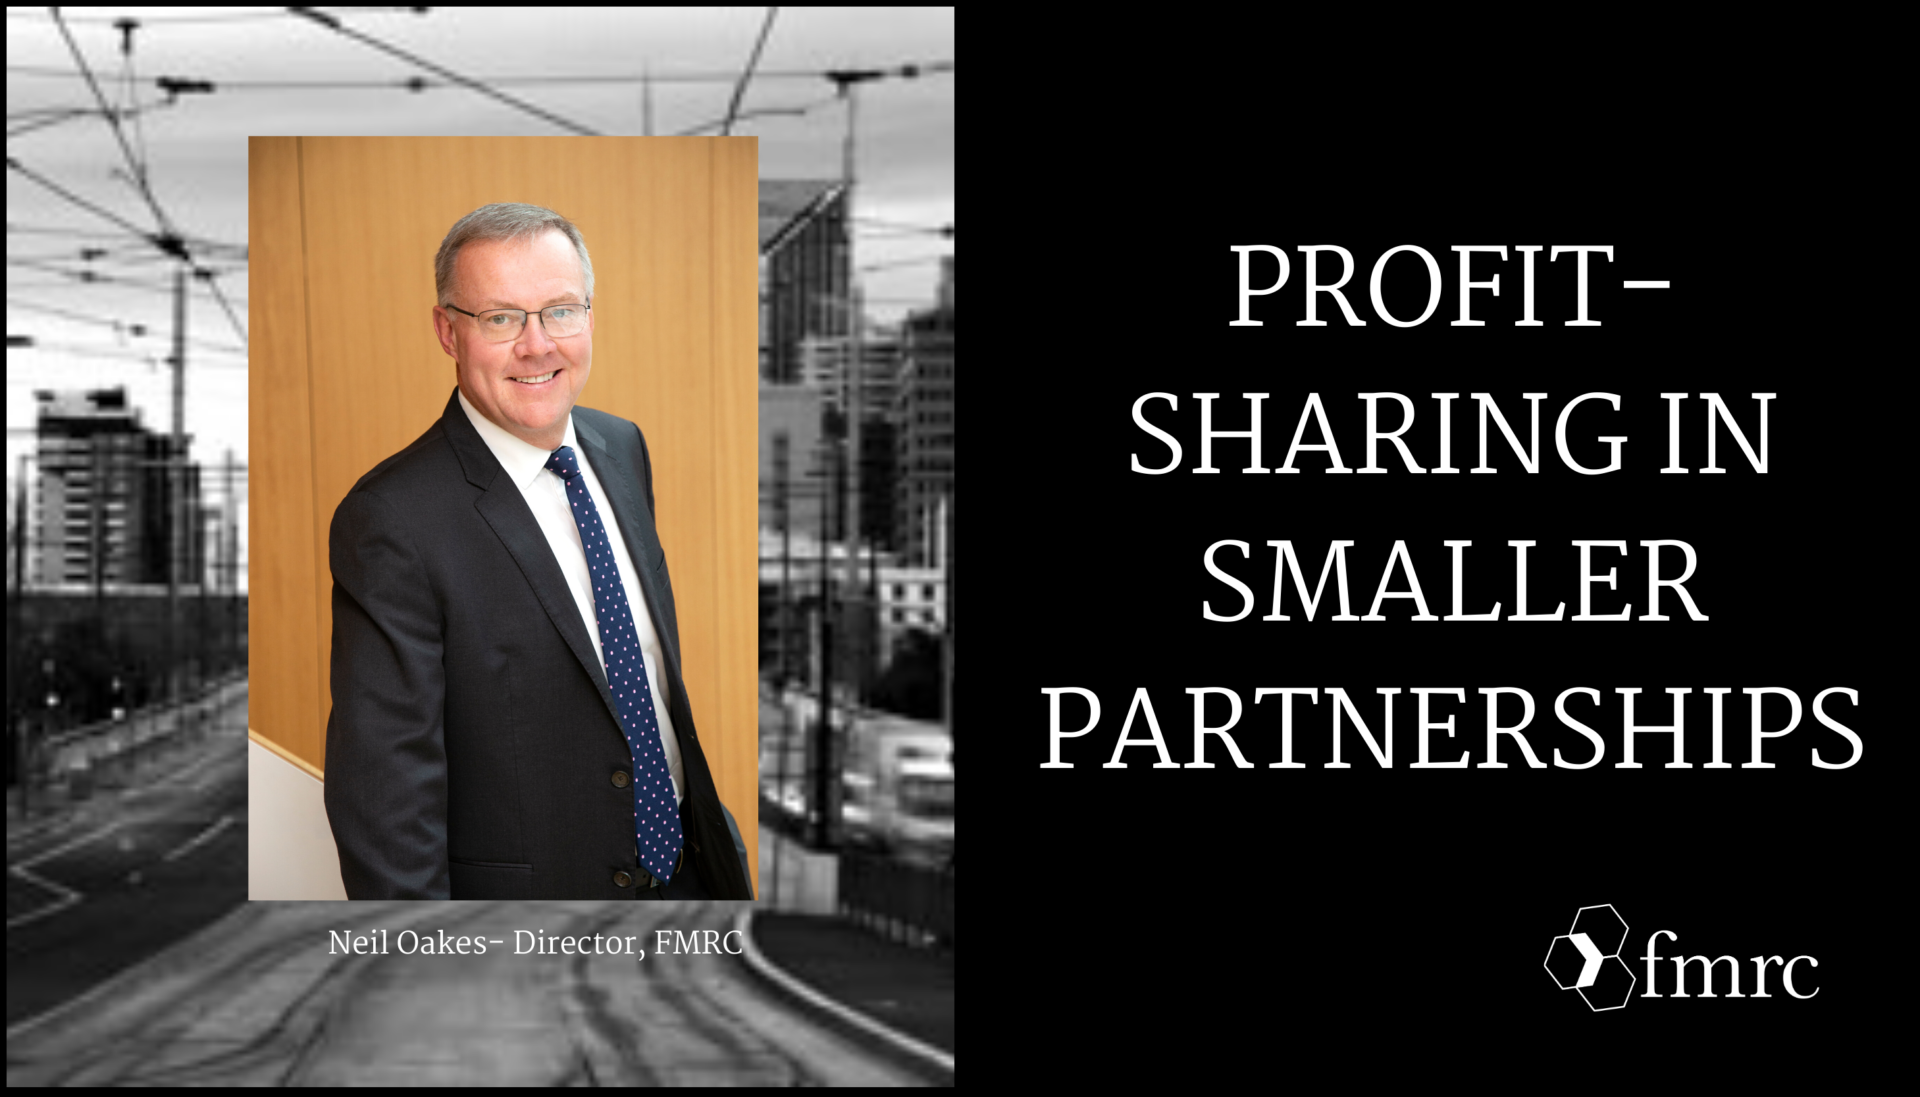 Profit-Sharing in Smaller Partnerships